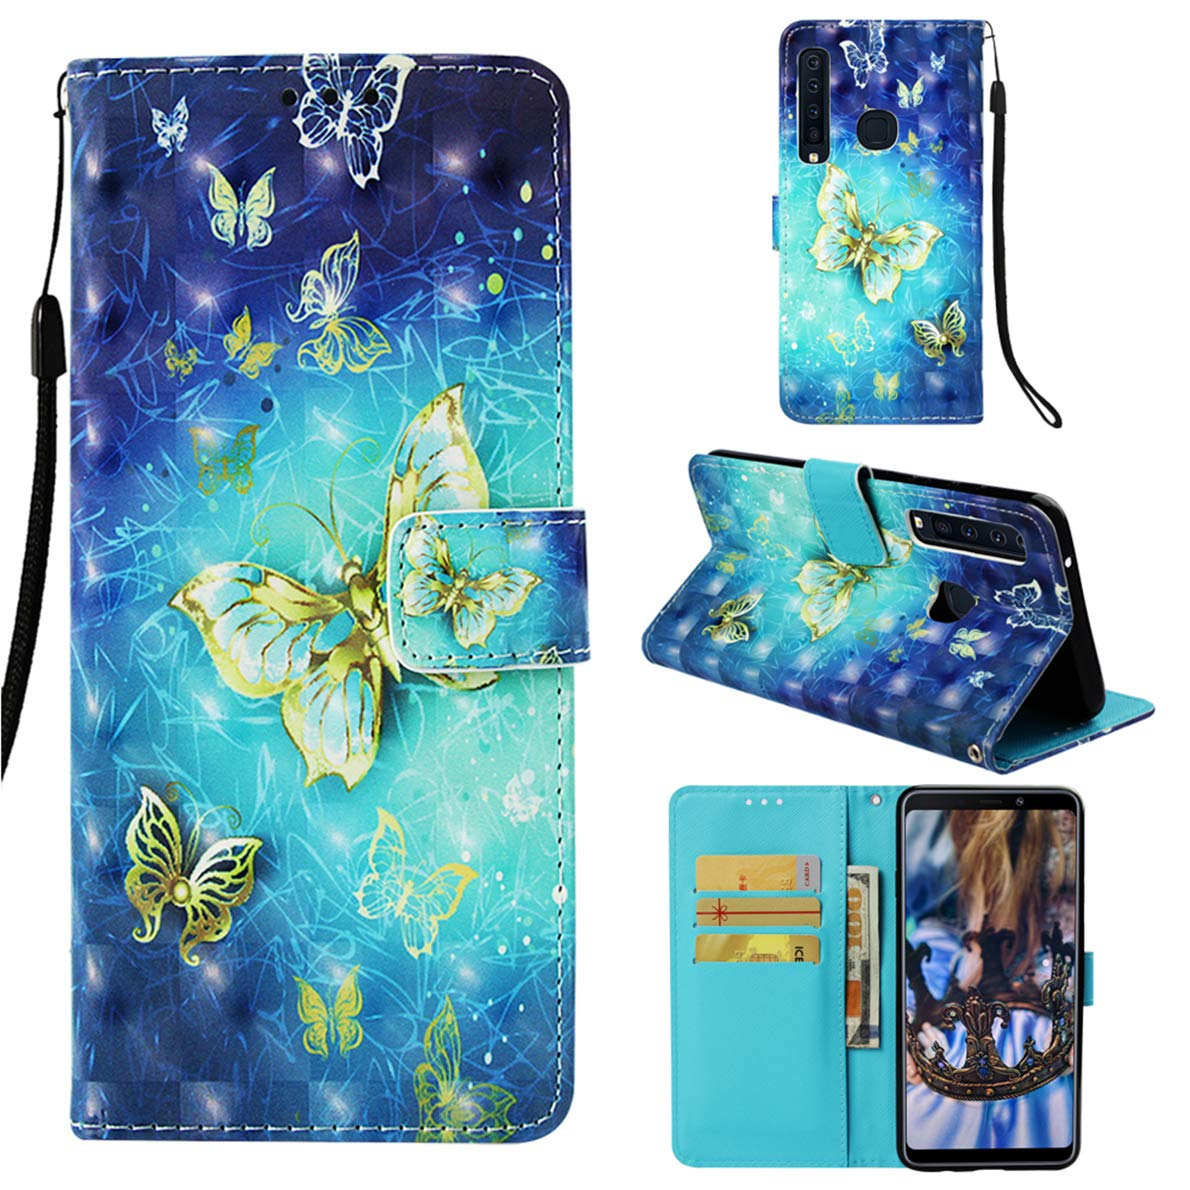 SHUYIT Samsung Galaxy A9 2018 Case, Color Pattern Luxury 3D PU Leather Case Book Case Flip Wallet Case Protective Cover for Samsung Galaxy A9 2018 Shell with Card Slots Stand Magnetic Closure